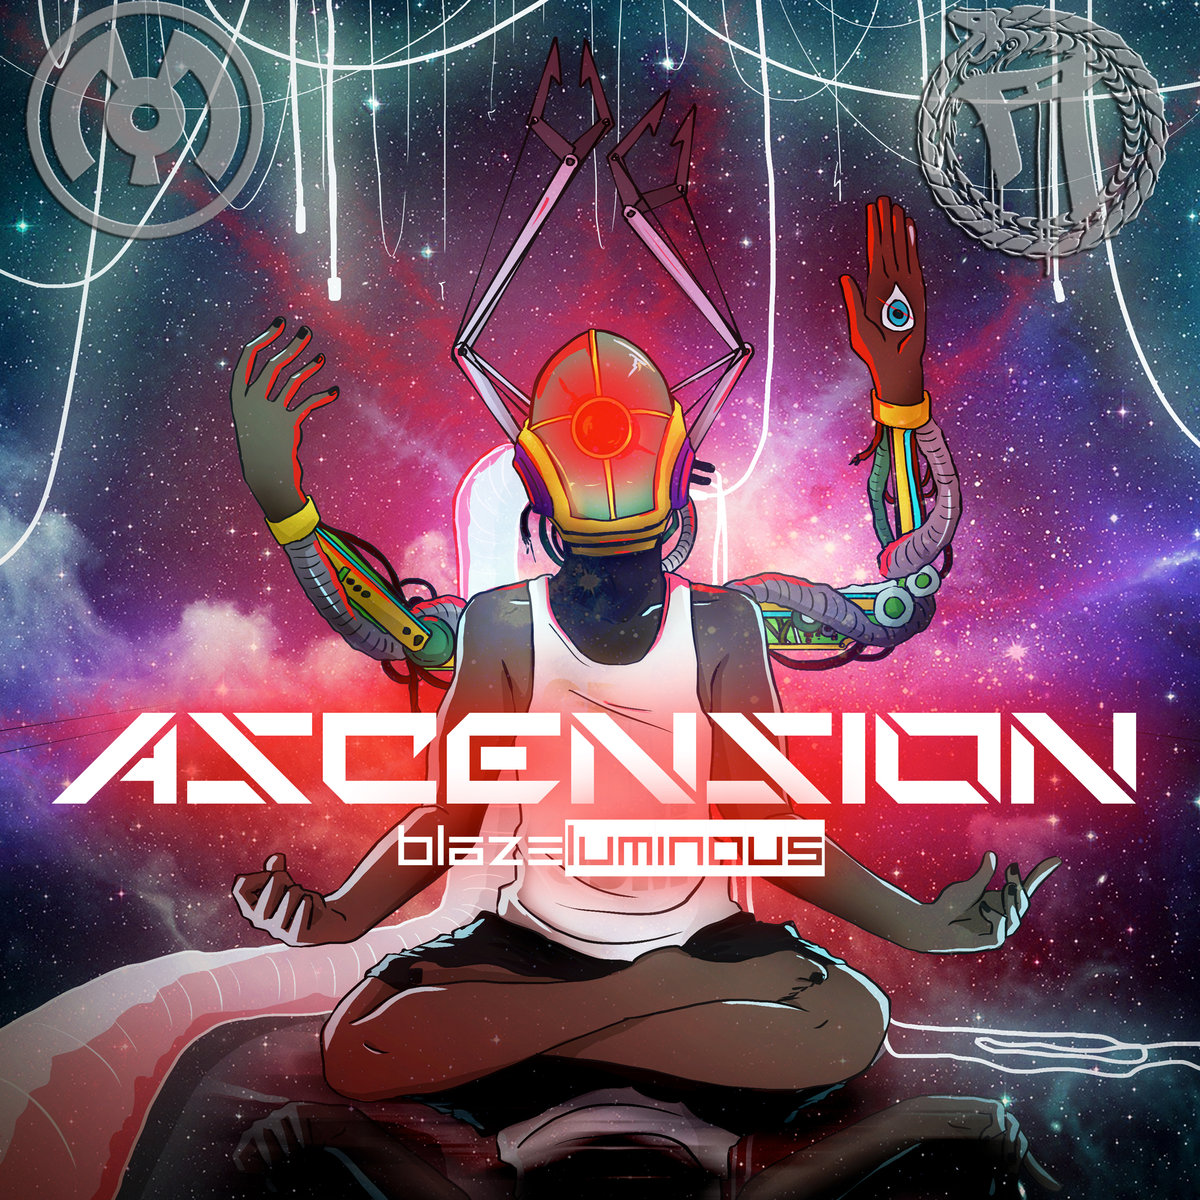 Blaze Luminious - Tao @ 'Ascension' album (electronic, dubstep)